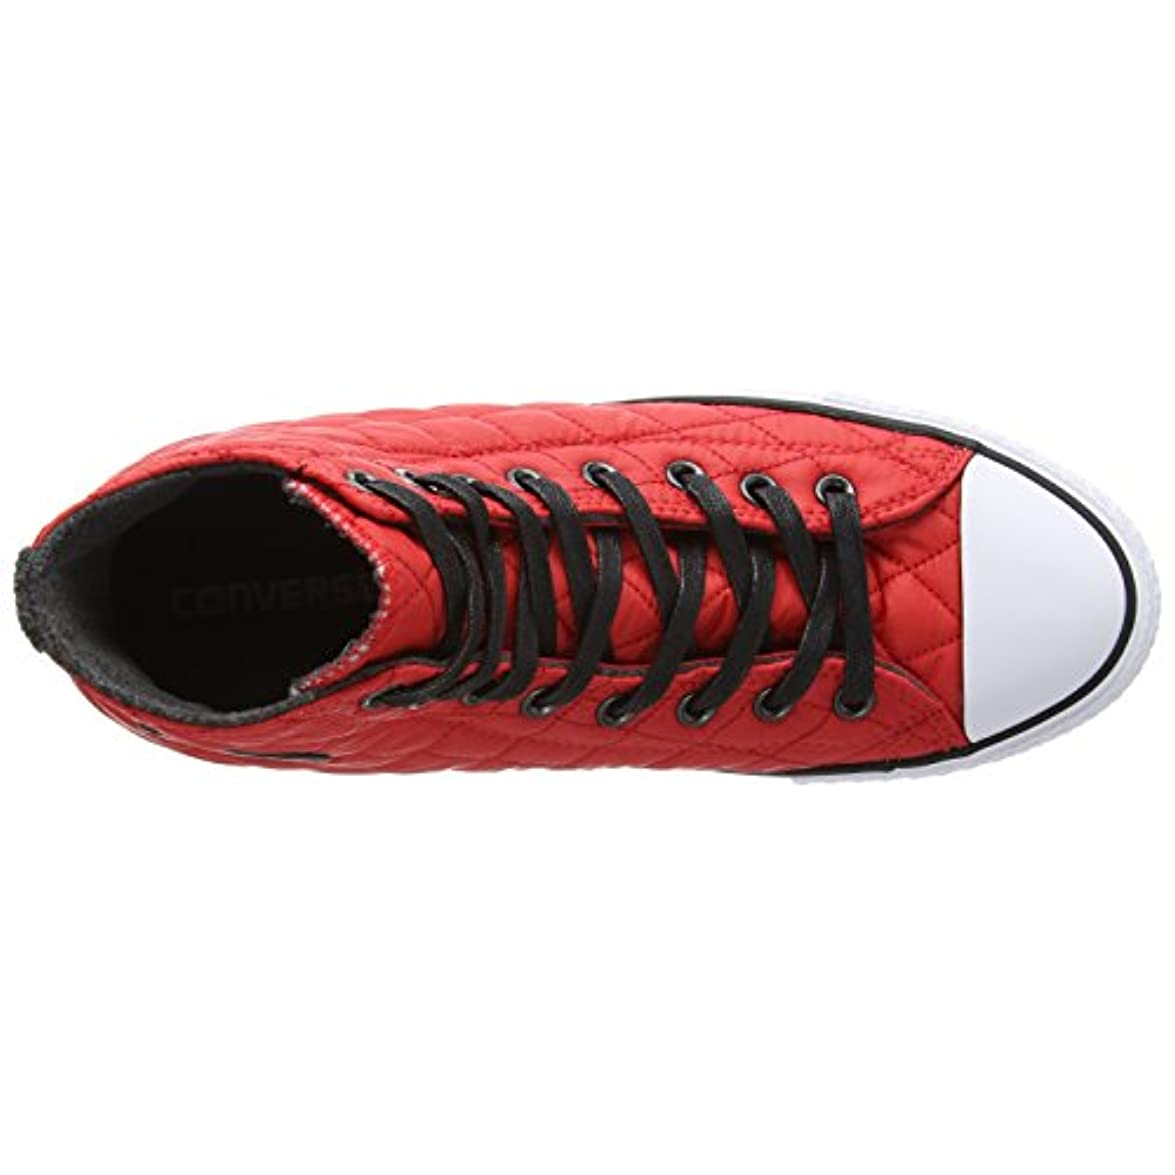 Converse Star Hi Textile Quilted Sneaker unisex Adulto